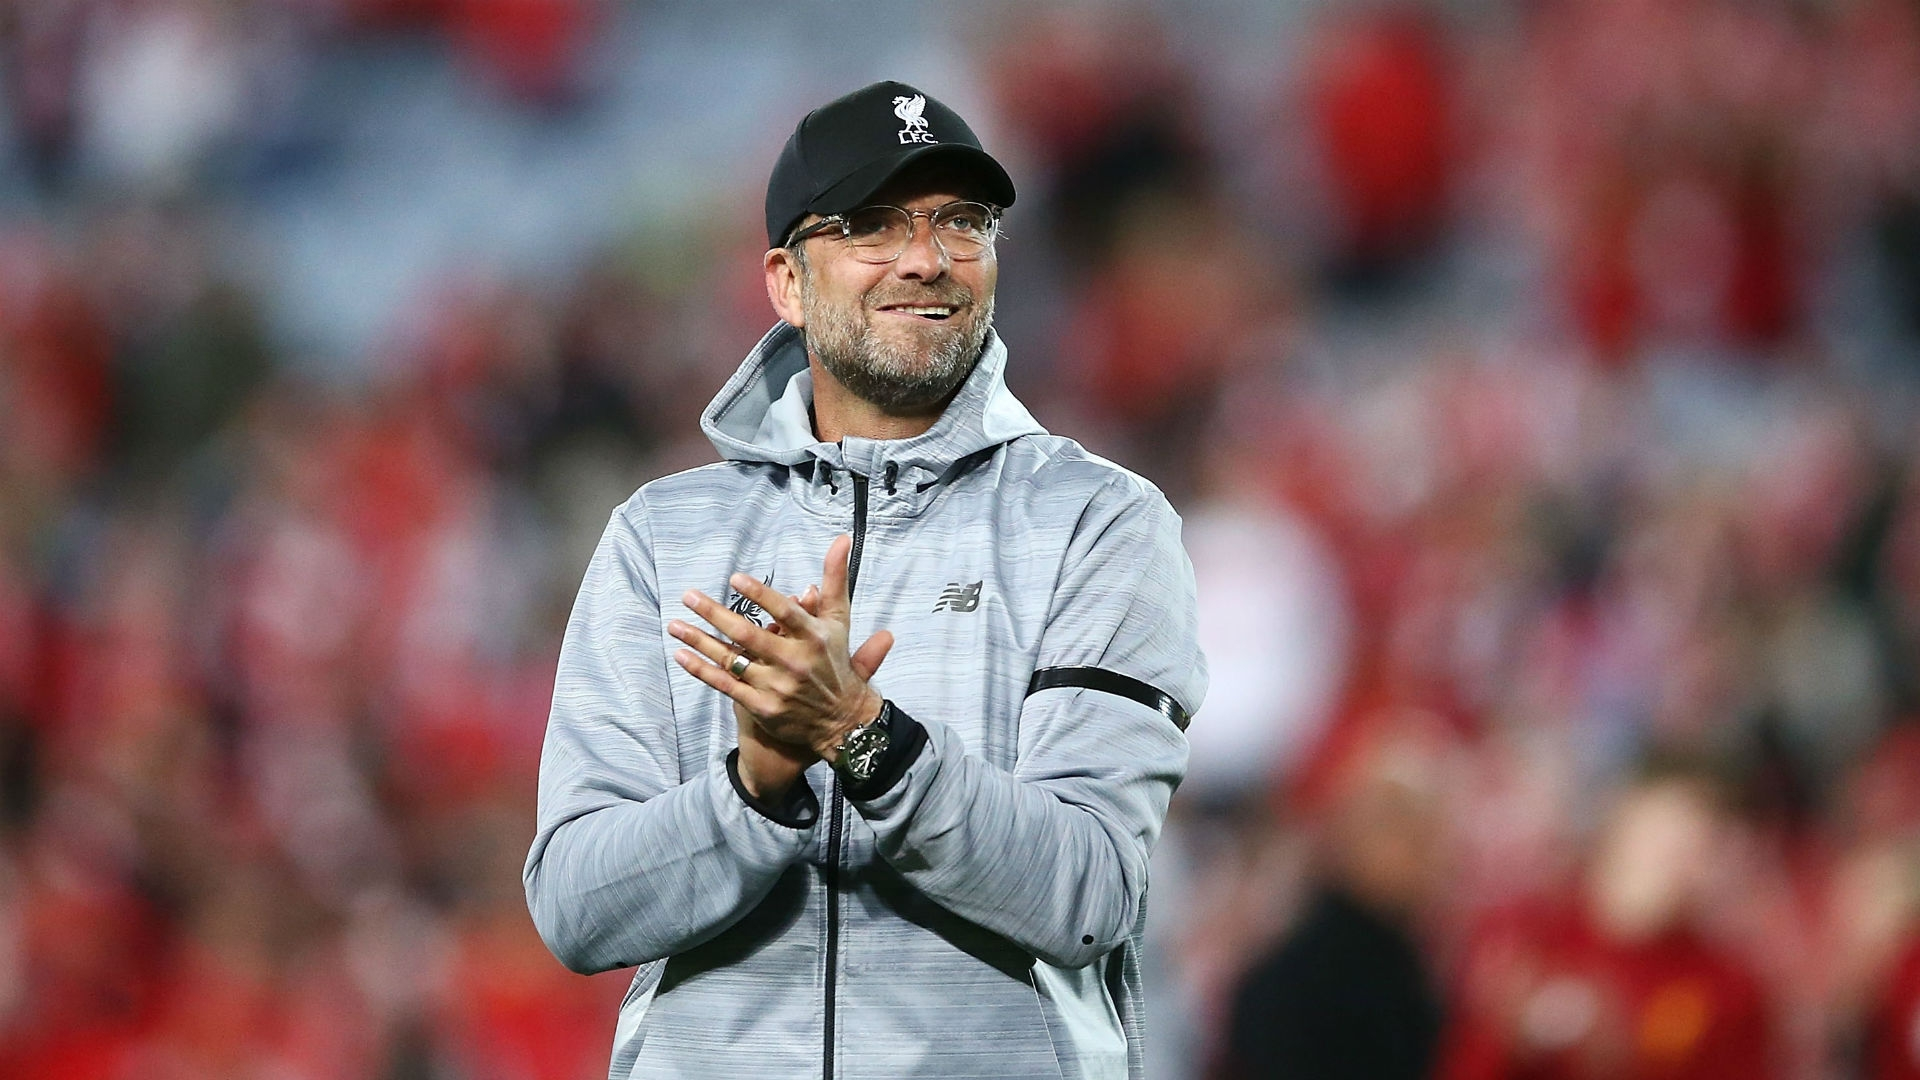 Jurgen Klopp recently admitted to dificulties in signing top players